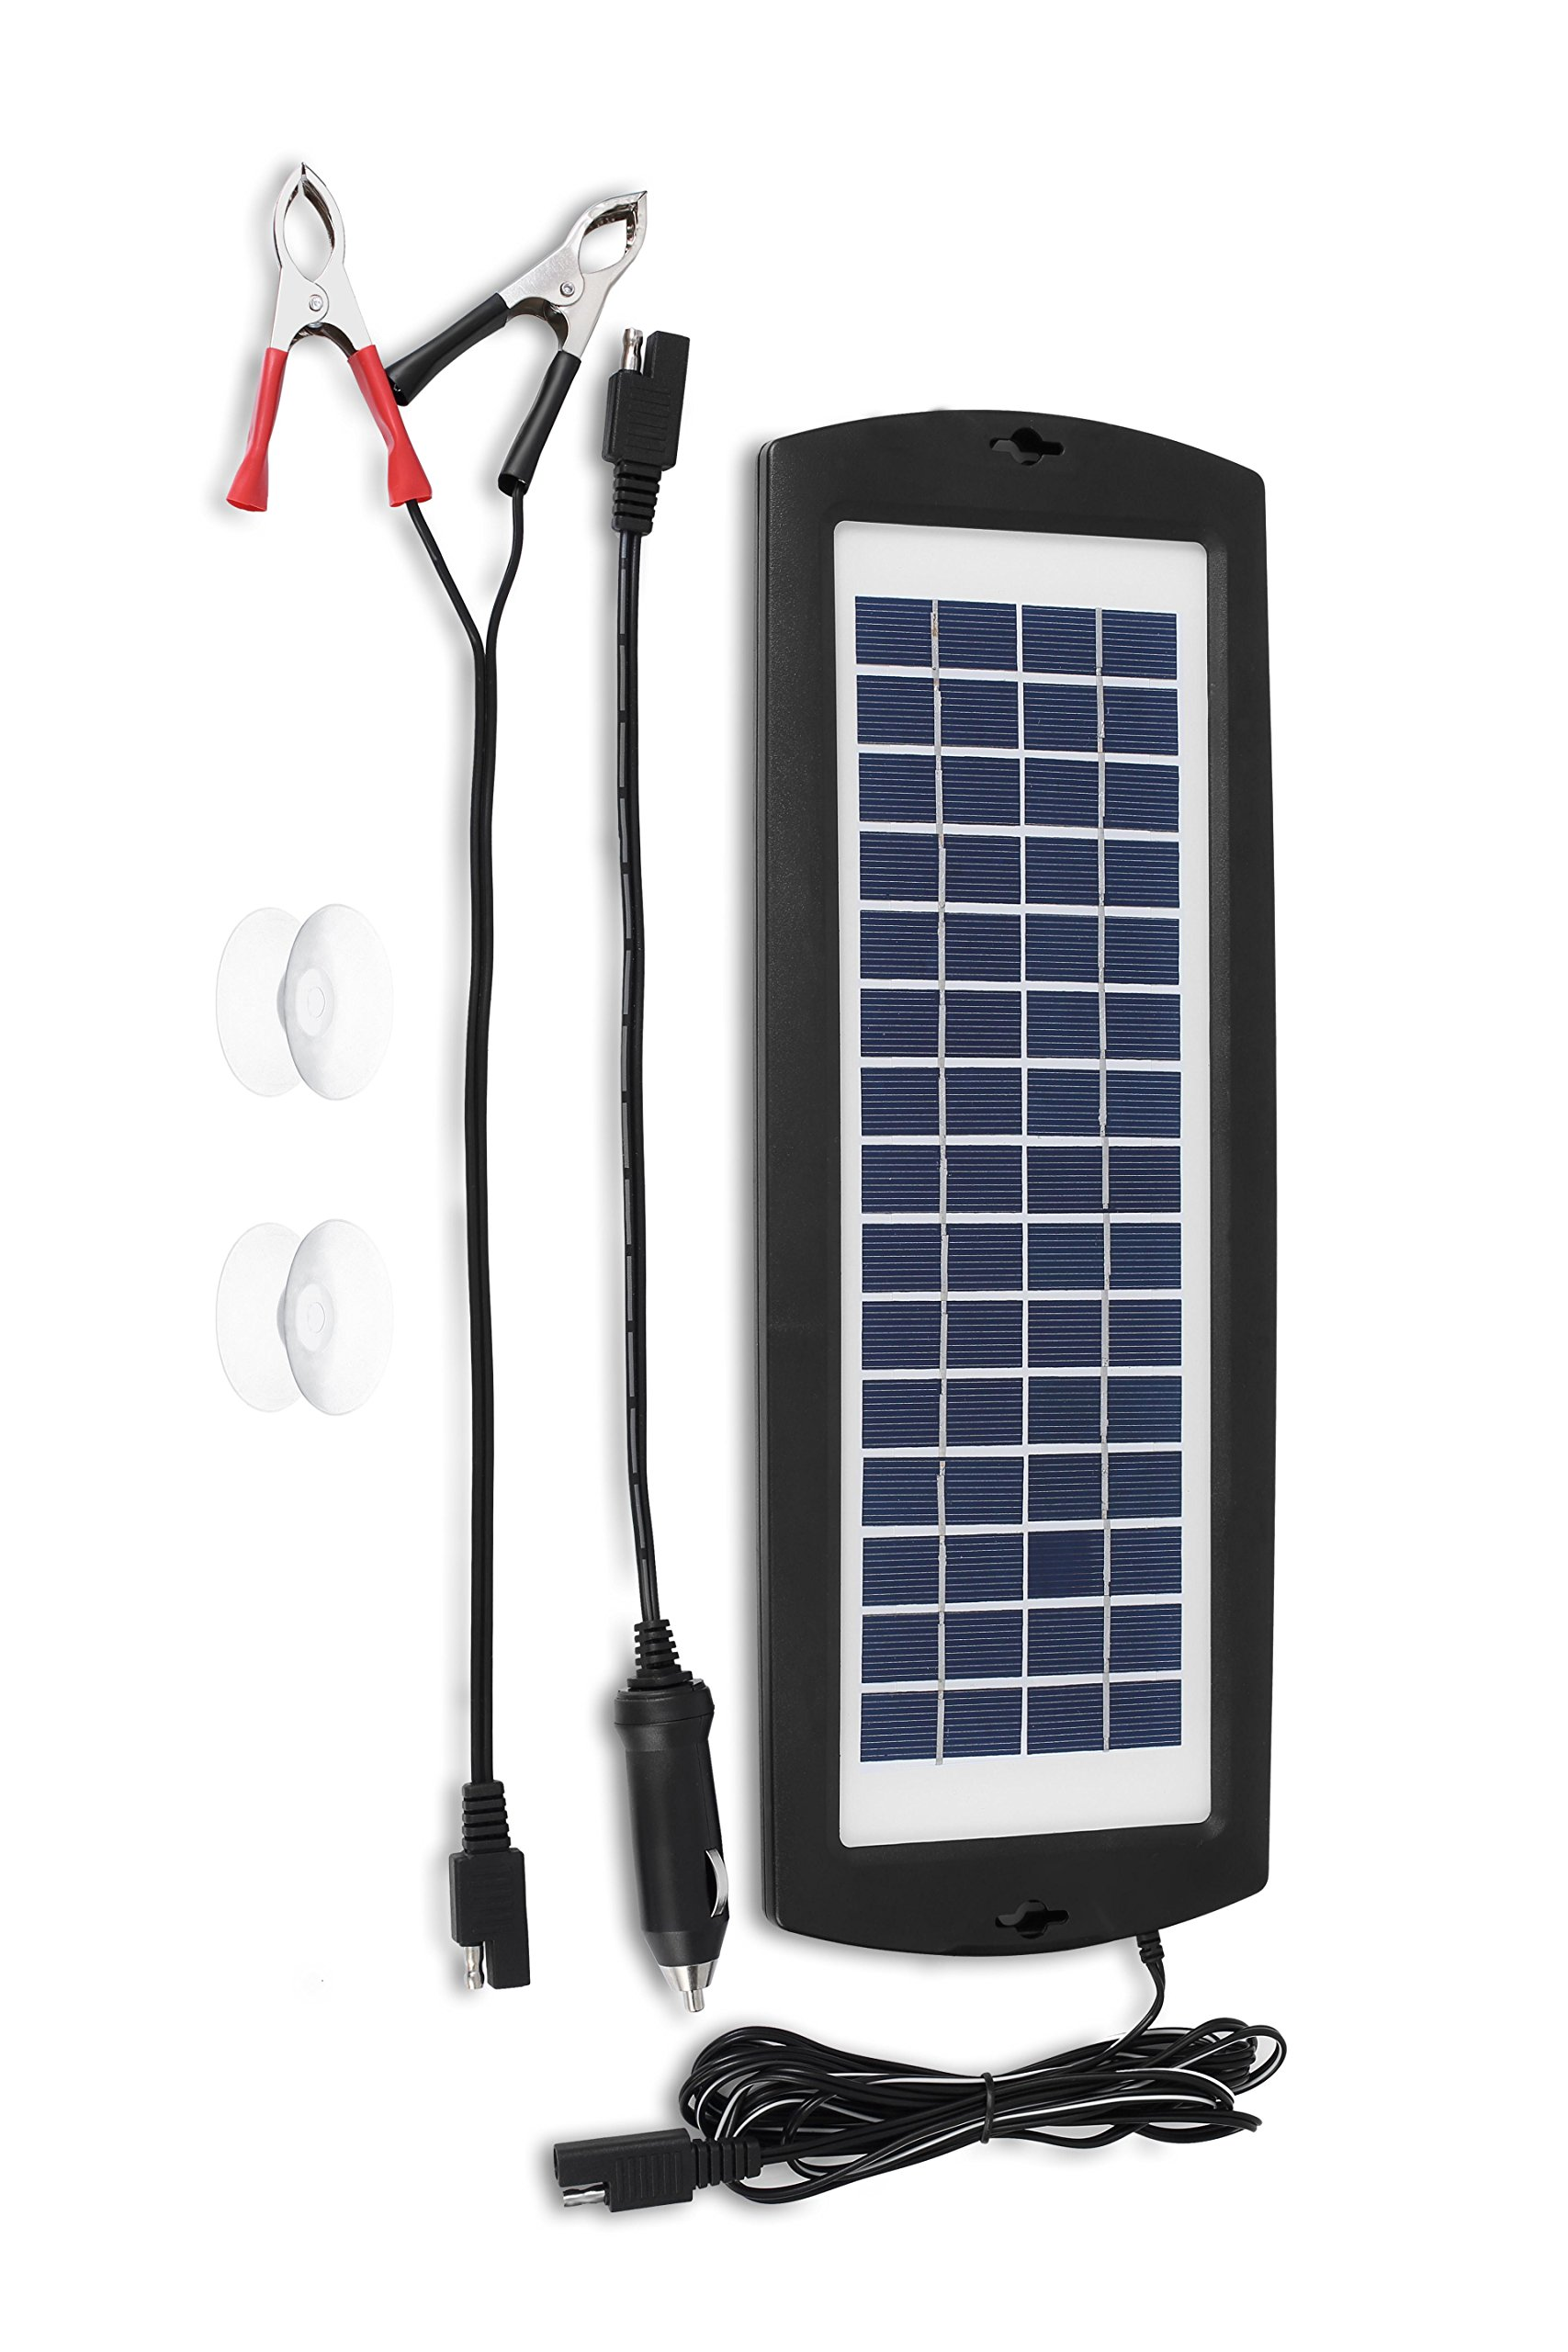 MoPower2U Solar Charger Battery Level Maintainer - 12V Battery Level Maintainer for Car Truck Motorcycle Camper Trailer RV Boat ATV Tractor Lawn Mower Batteries by MoPower2U